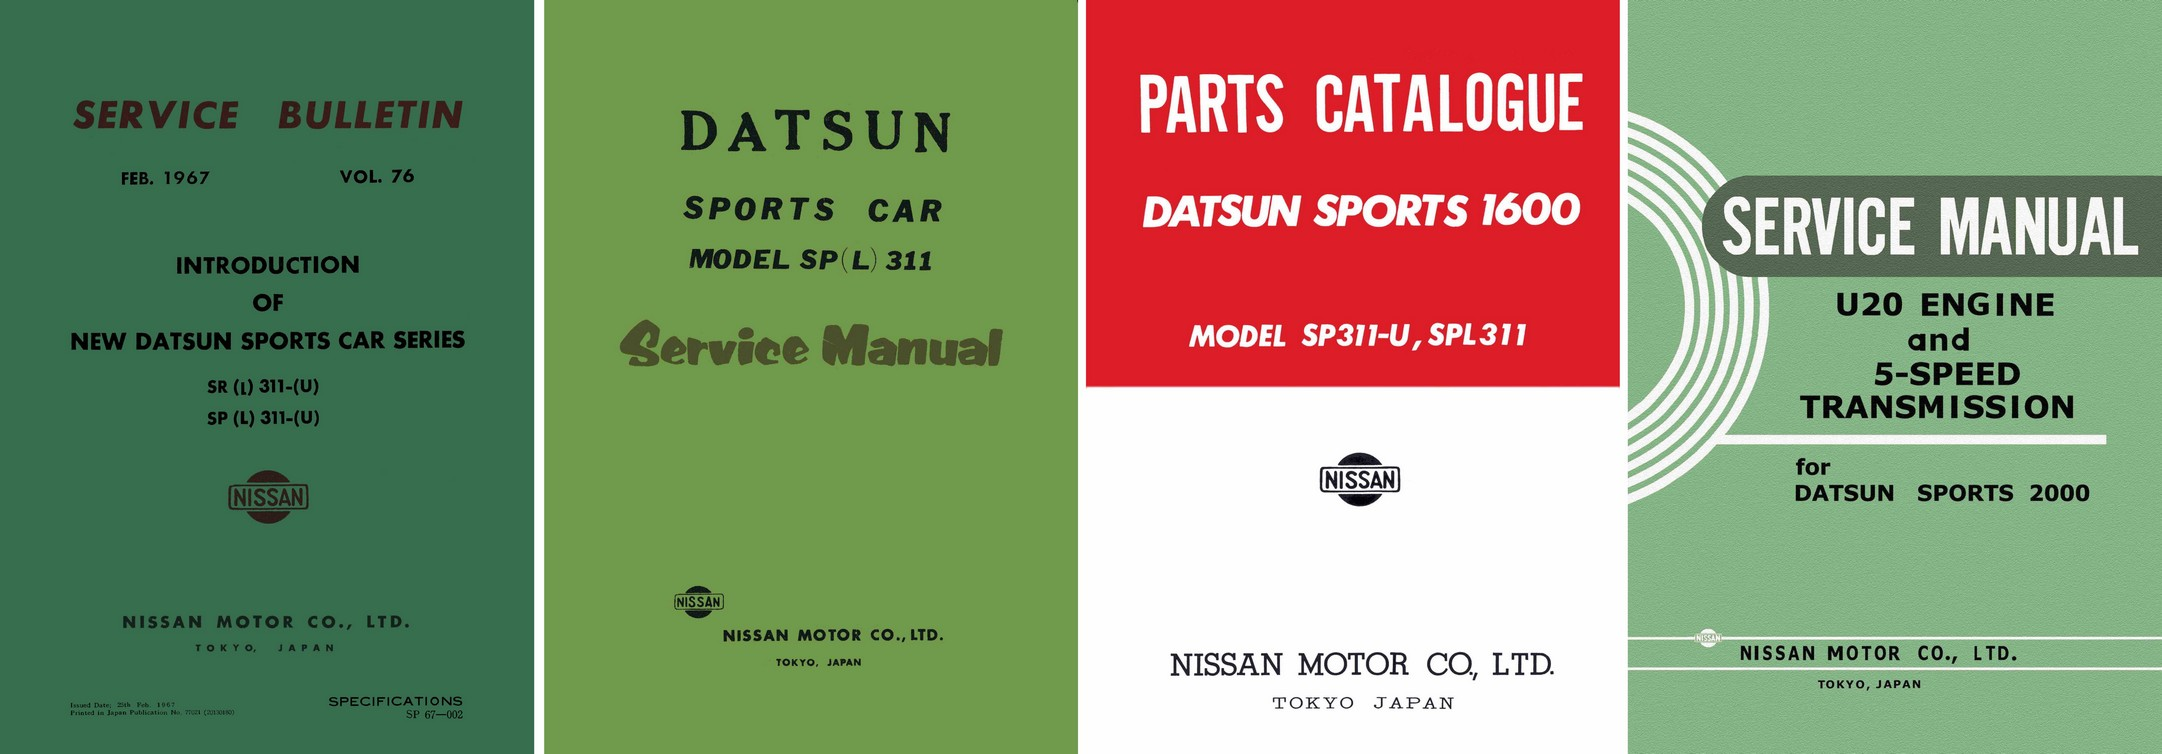 datsun competition preparation manaul download